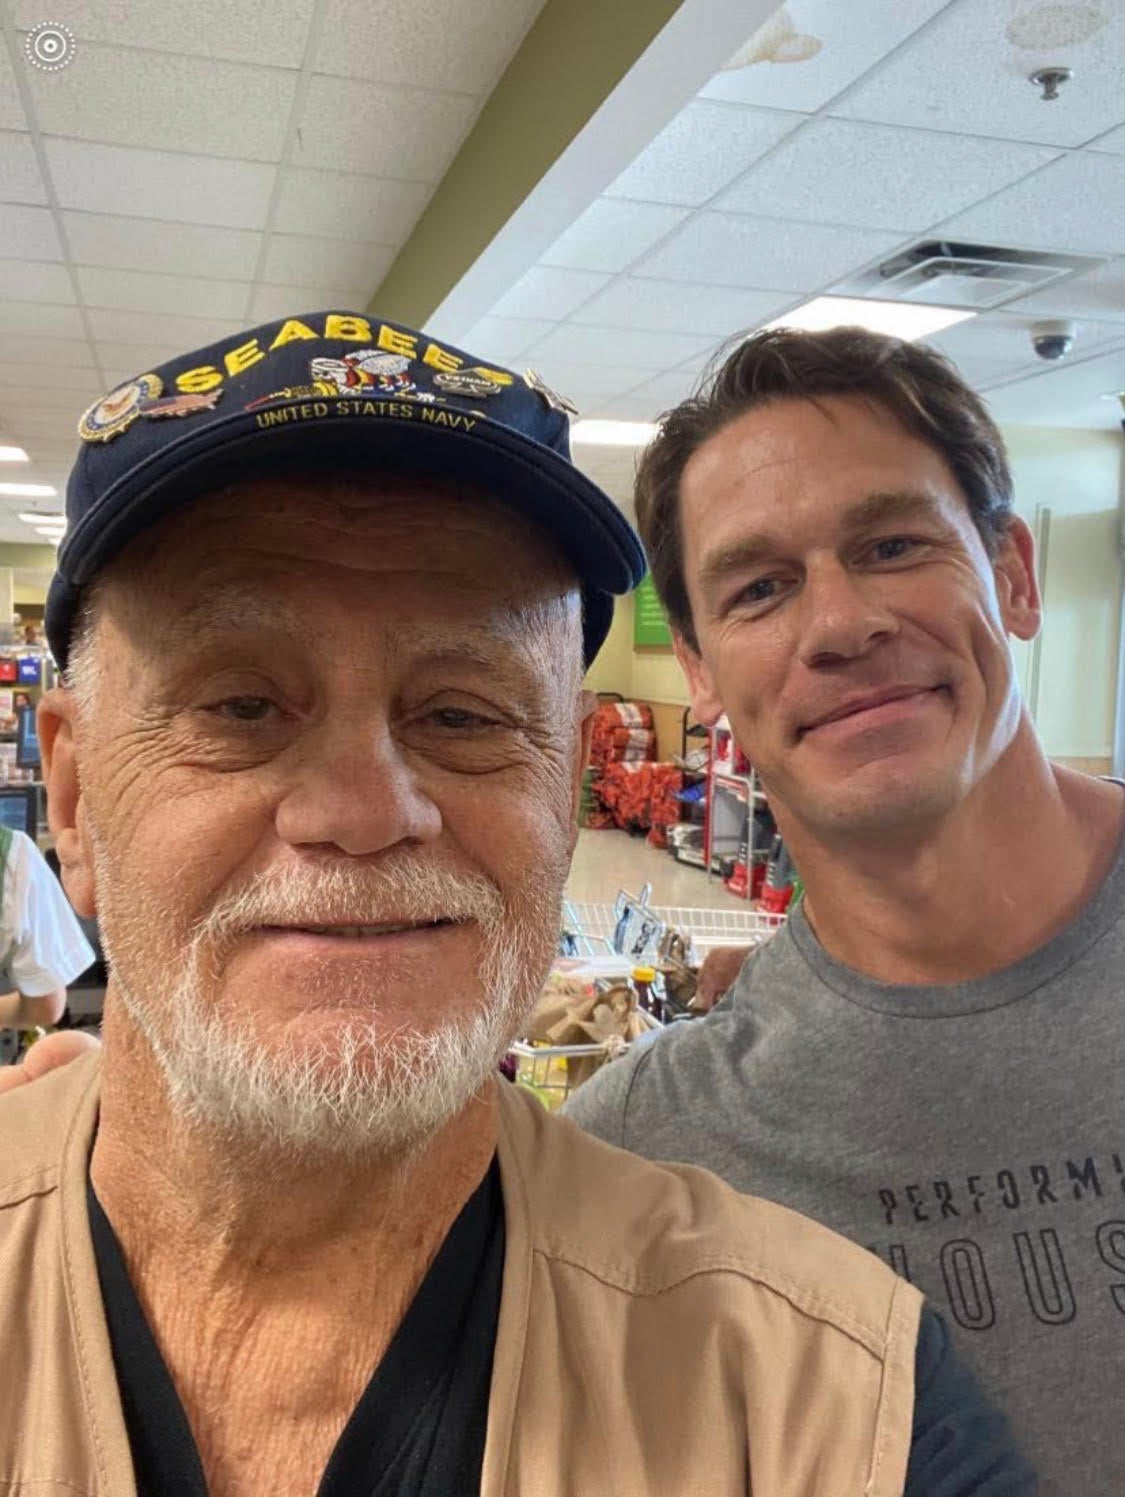 John Cena at grocery store with a vet, whose bill he paid.